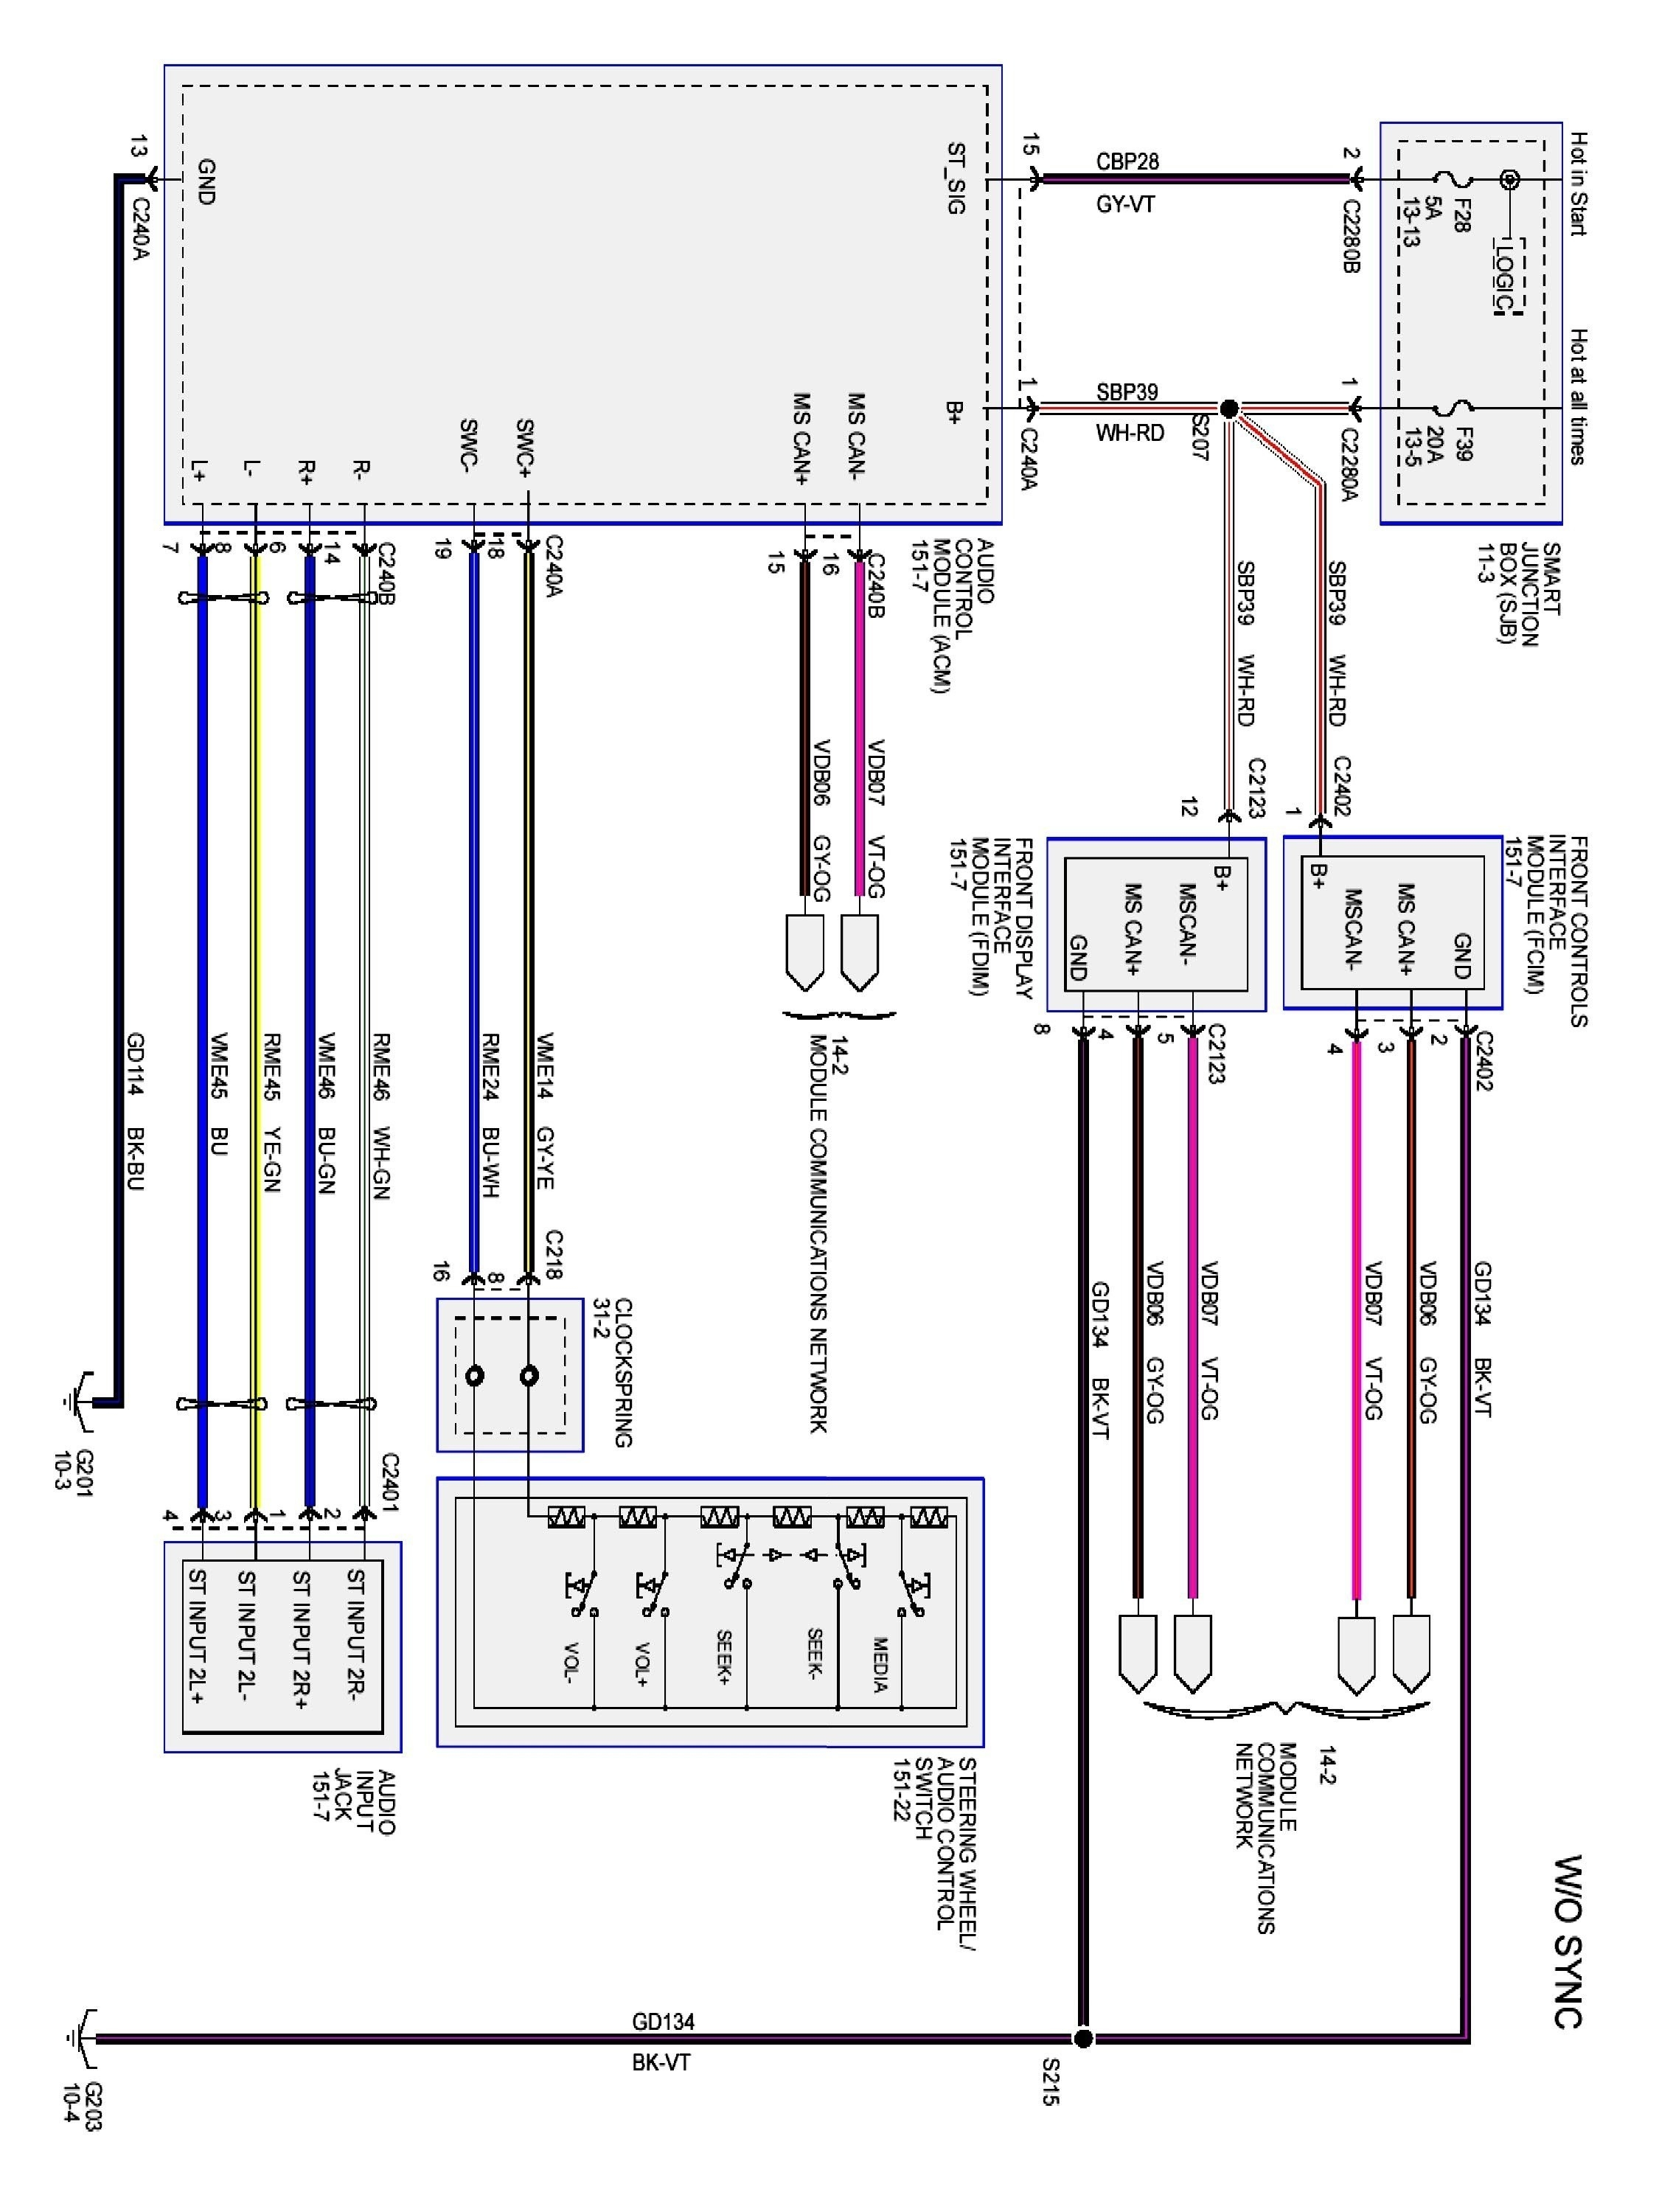 2003 Mitsubishi Diamante Radio Wiring Diagram - Wiring ... on